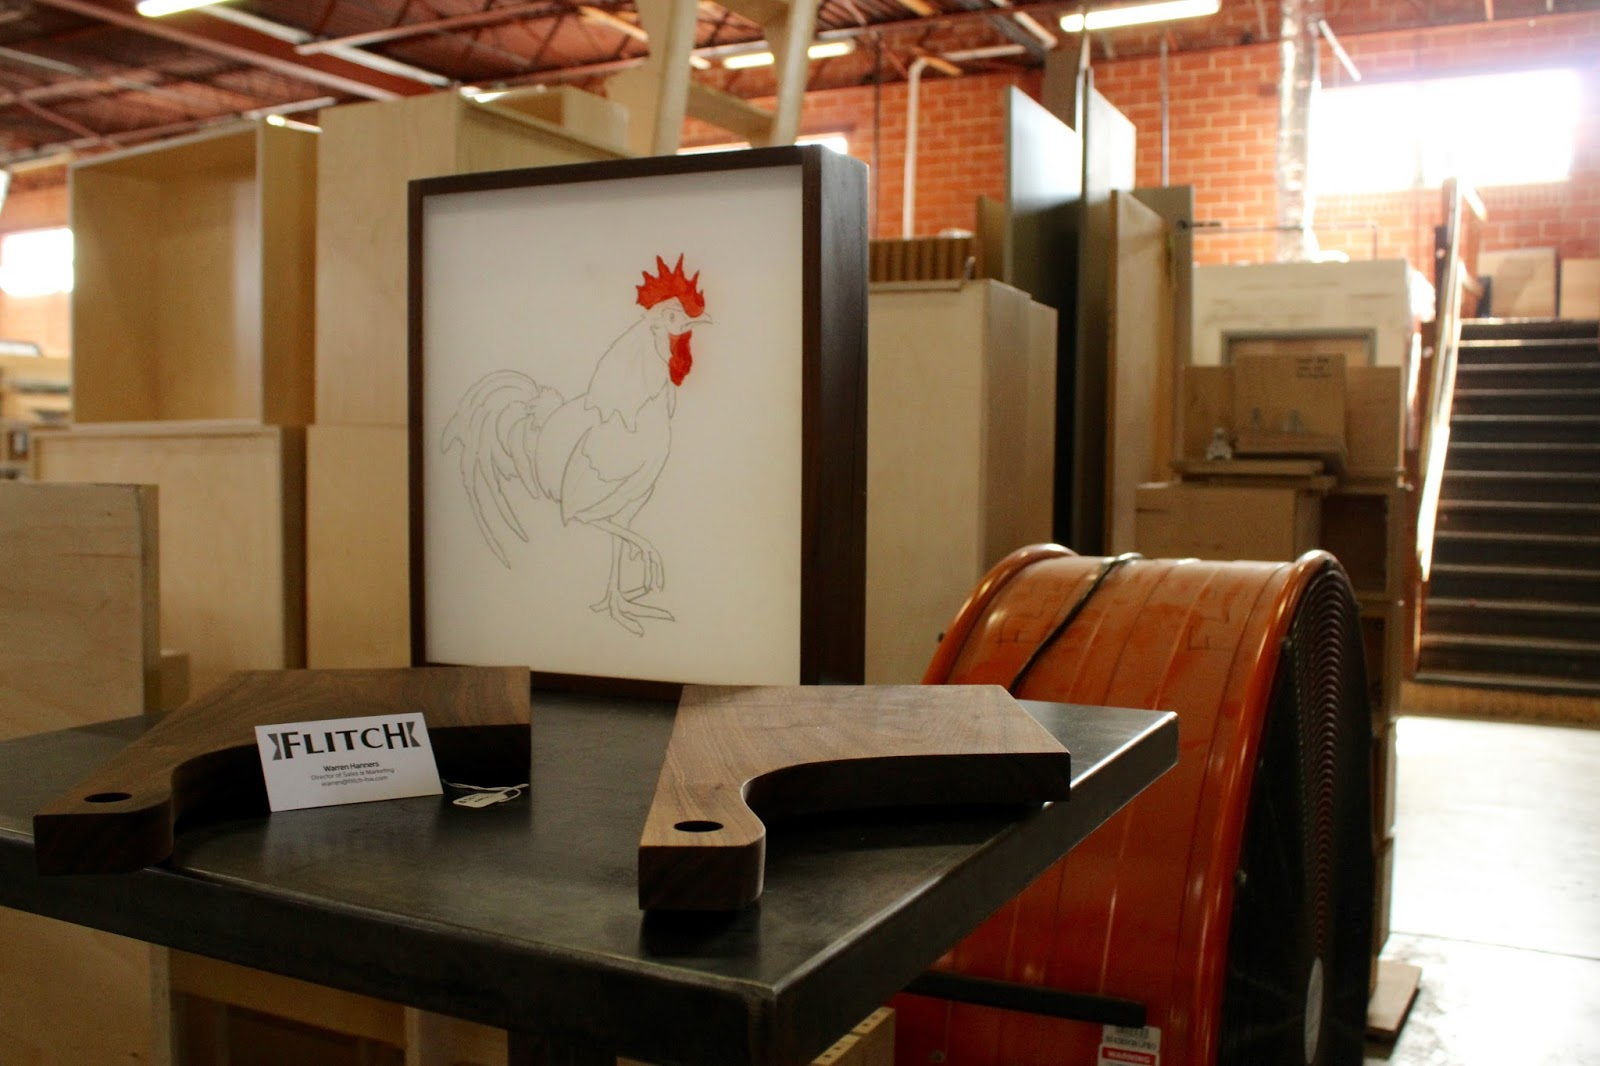 Flitch displayed their pieces in the middle of the warehouse that they work out of everyday.